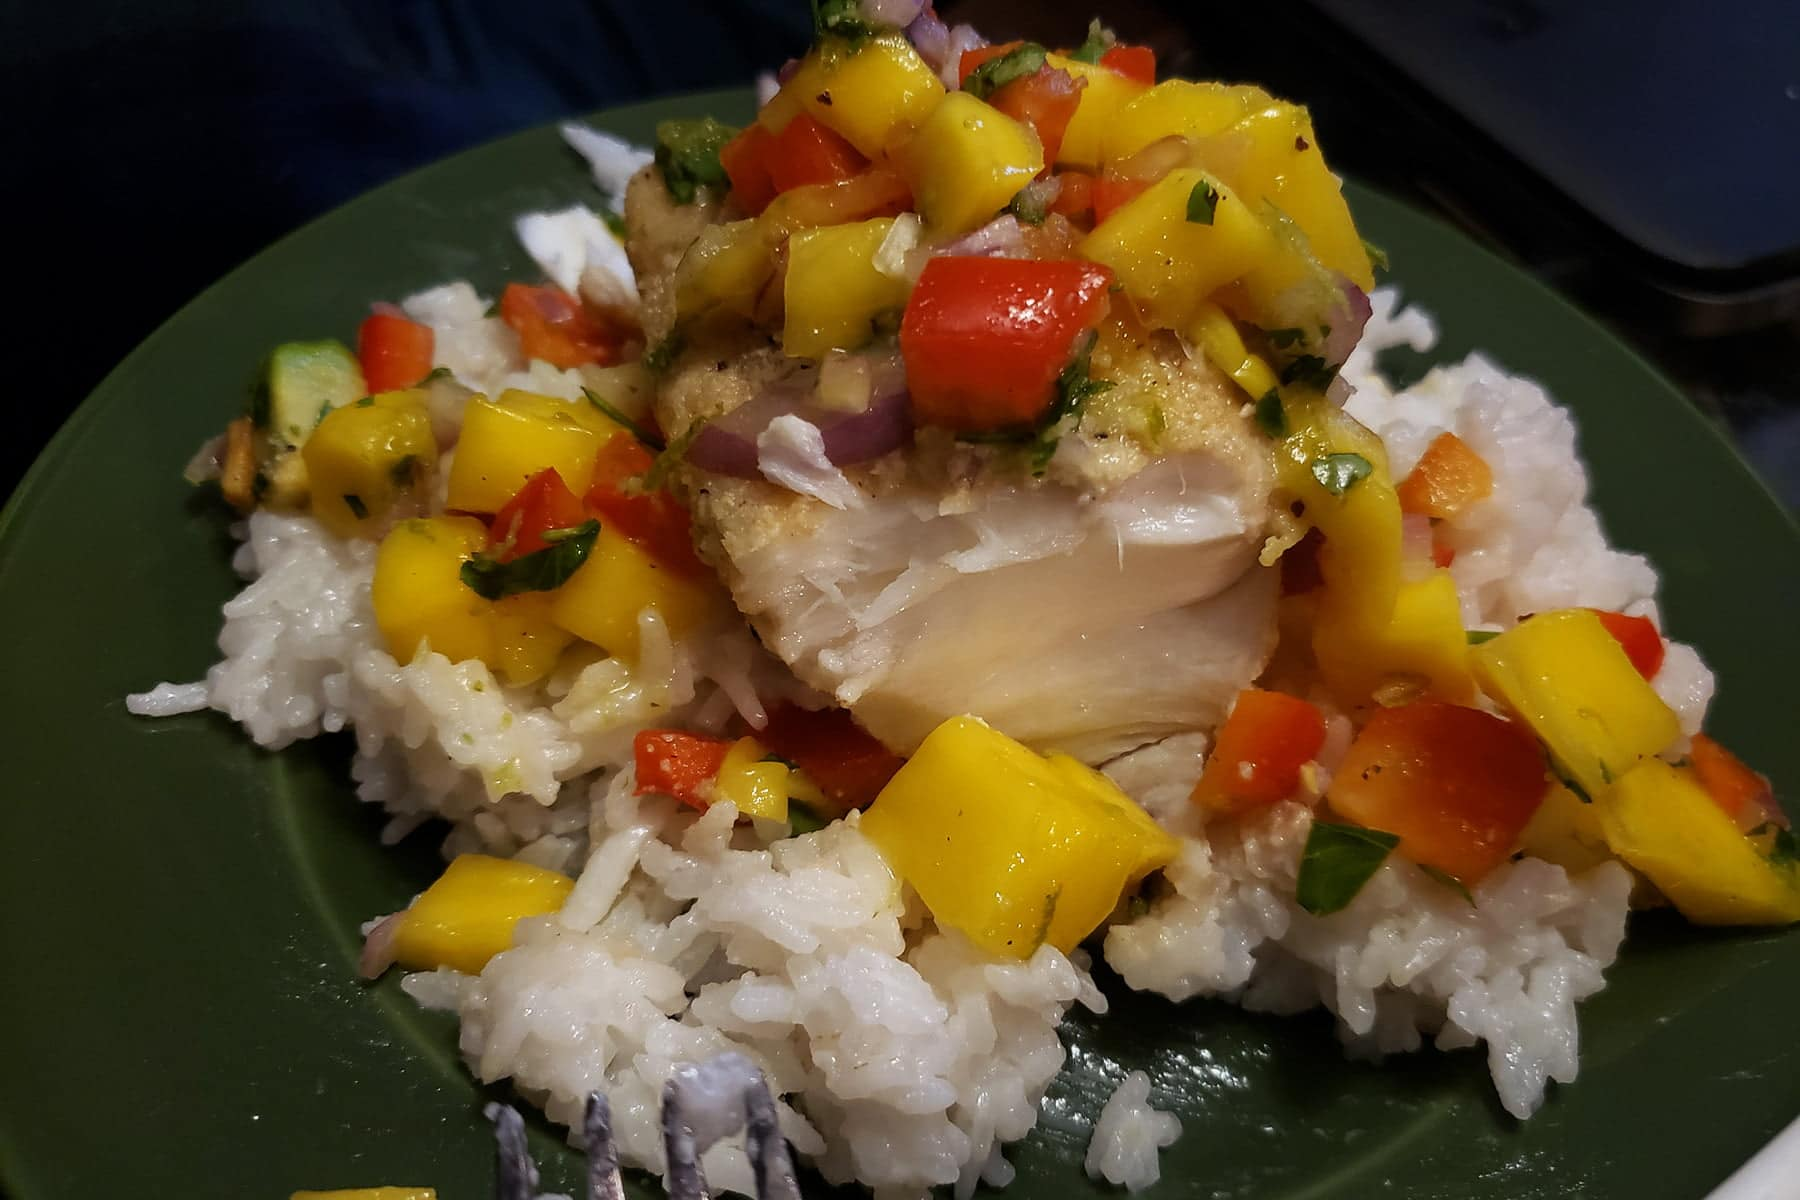 A cell phone photo of a serving of cashew crusted halibut with mango salsa on top. Part of the fish has been flaked away, showing the meaty white interior.